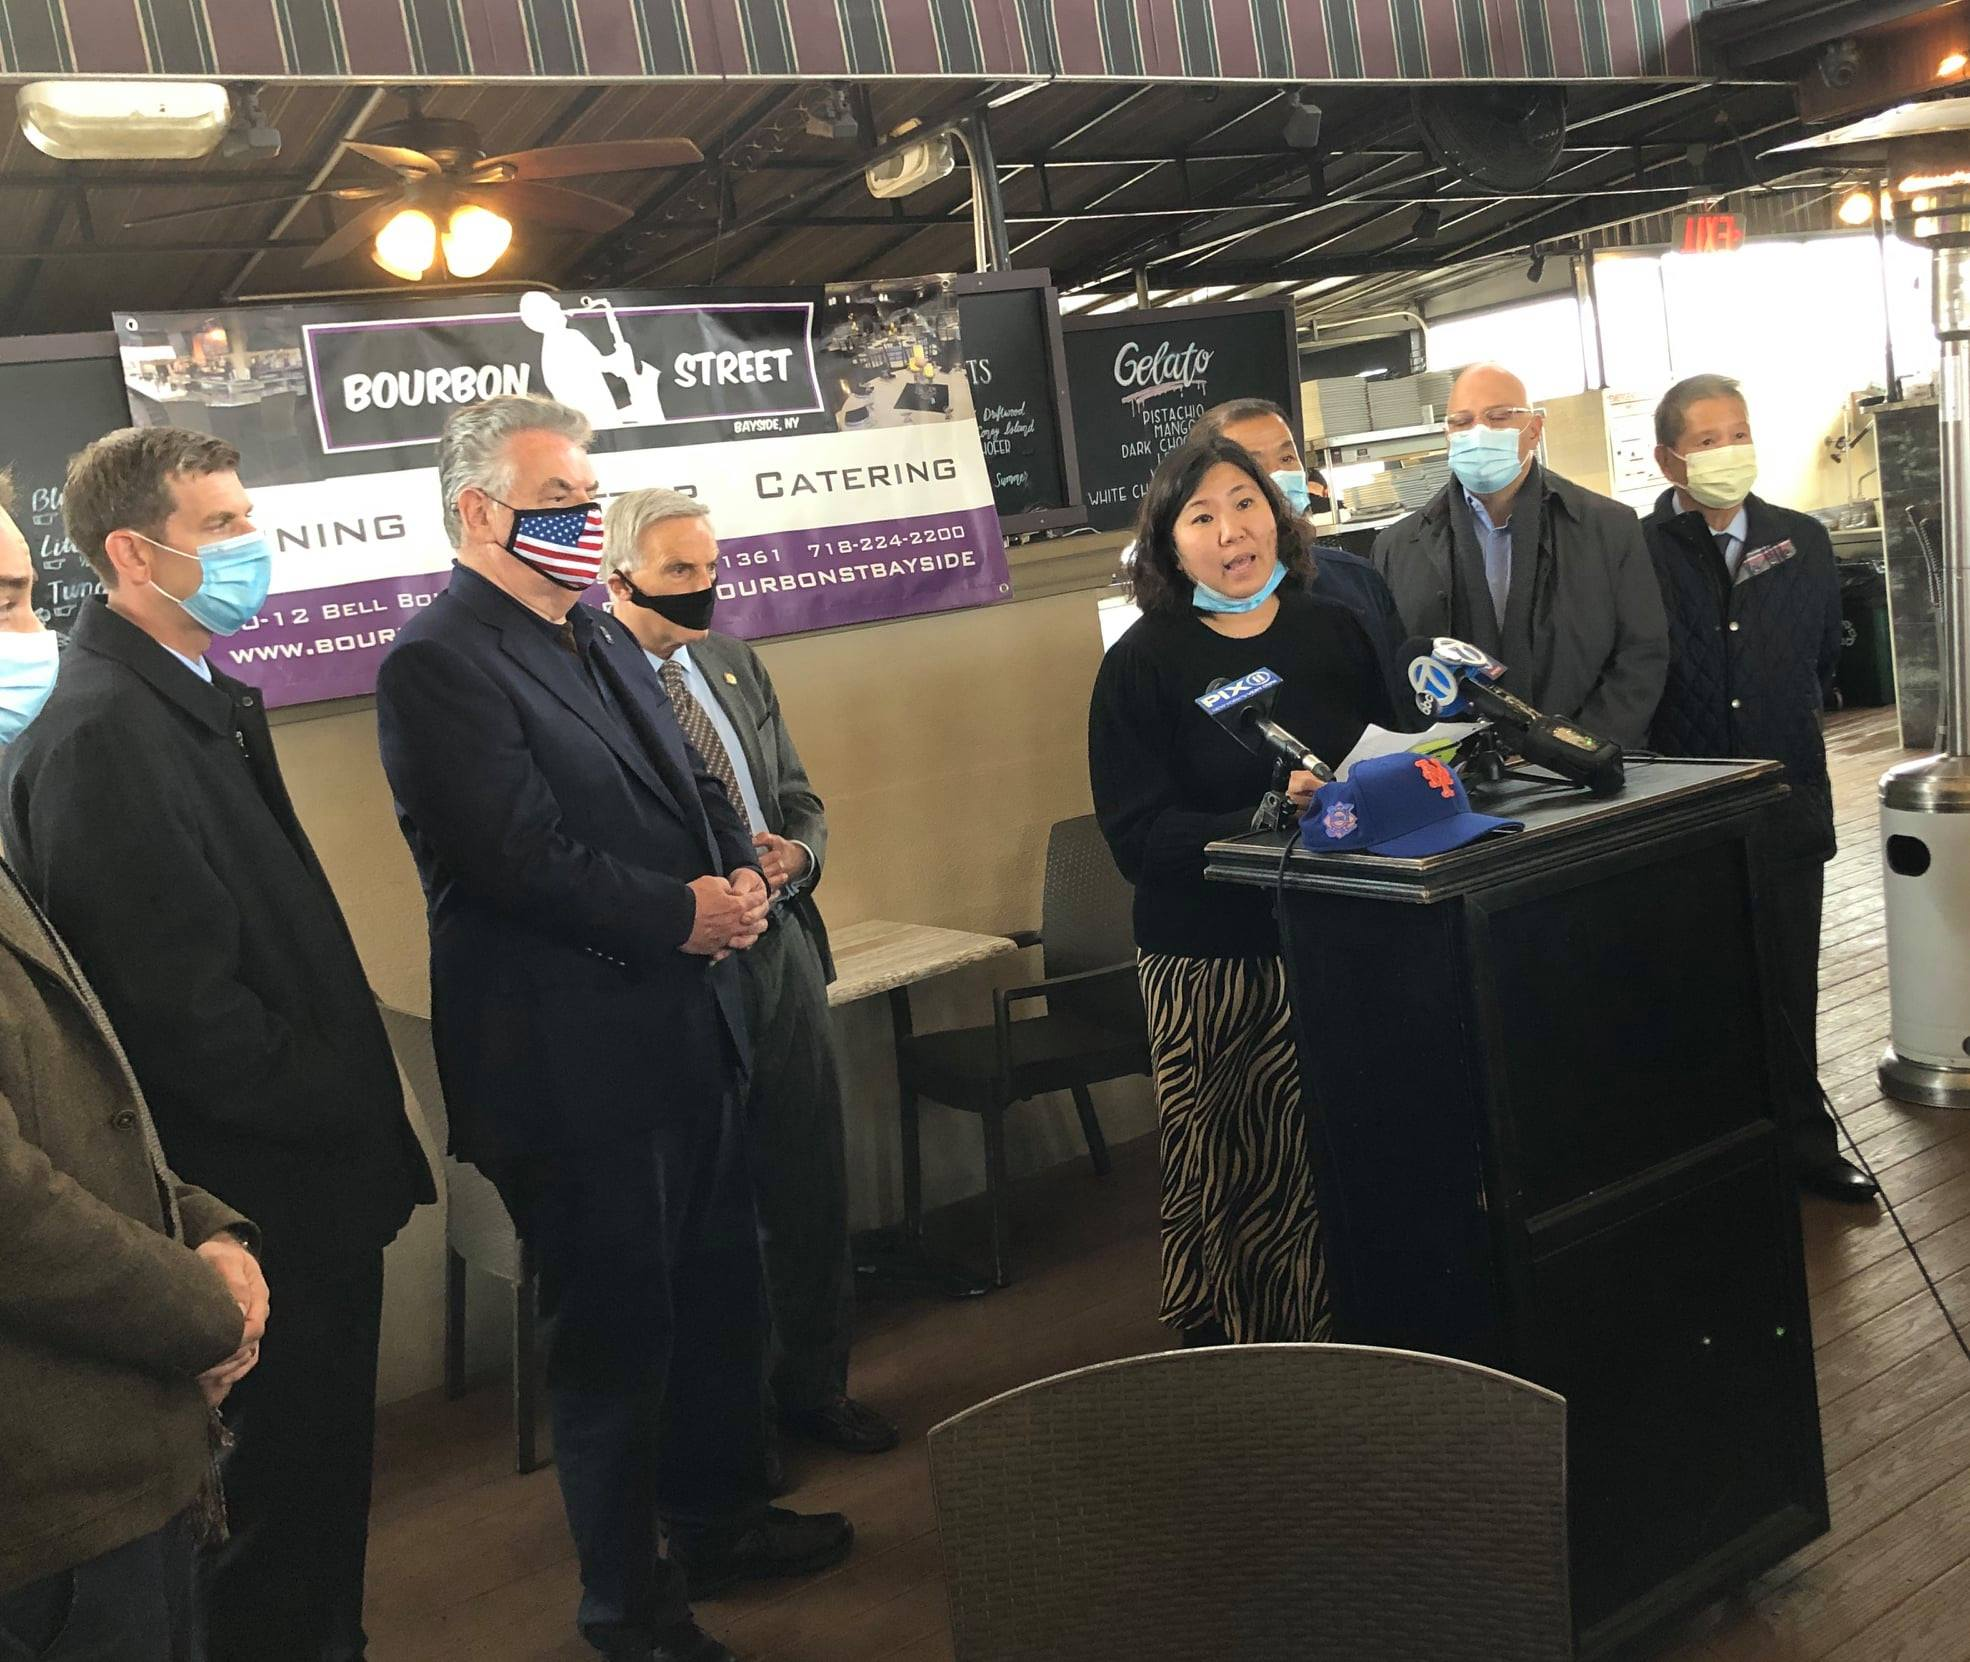 On October 30, 2020, Assemblyman Braunstein joined Congresswoman Grace Meng in calling for the enactment of the Federal RESTAURANTS Act, which would provide funding to help restaurants and drinking es